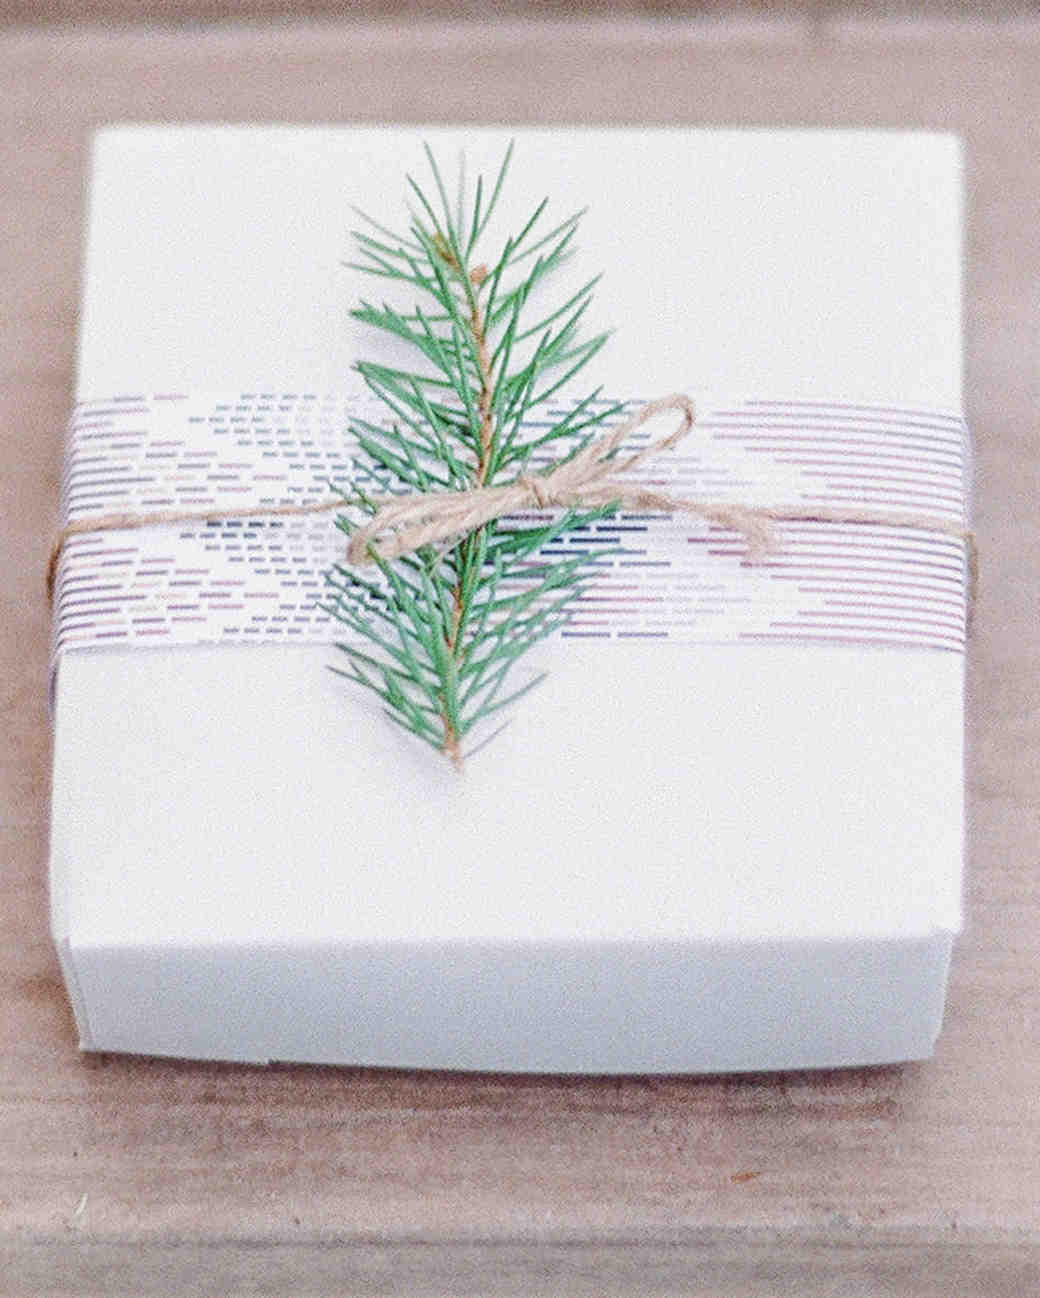 Favor Box with Pine Twig